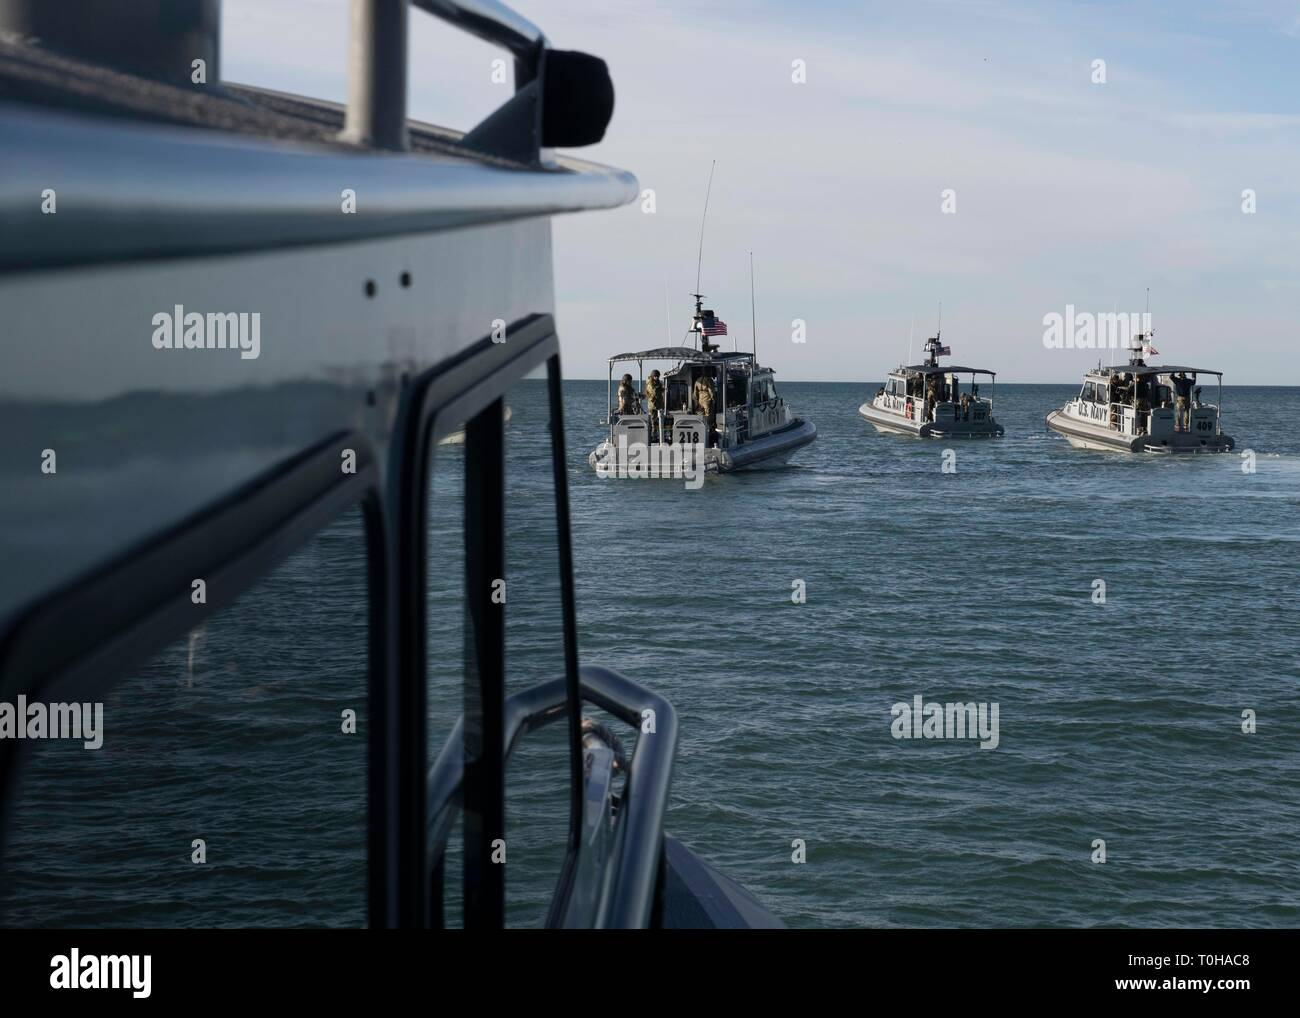 190315-N-RU084-1001 OXNARD, CALIF. (Mar. 15, 2019) – Seabees from Underwater Construction Team 2 (UCT-2) and Sailors from Coastal Riverine Squadrons (CRS) 3 and 11 transit out to Santa Rosa Island in 34-foot patrol boats, California to perform hydrographic survey and pier damage assessment training in support of Exercise Pacific Blitz 2019 (PacBlitz19). This training is the first time UCT-2 has worked with CRS and tests their ability to map areas for small craft landing enabling continued support to Navy and Marine Corps operations. PacBlitz19 provides realistic, relevant training necessary fo Stock Photo